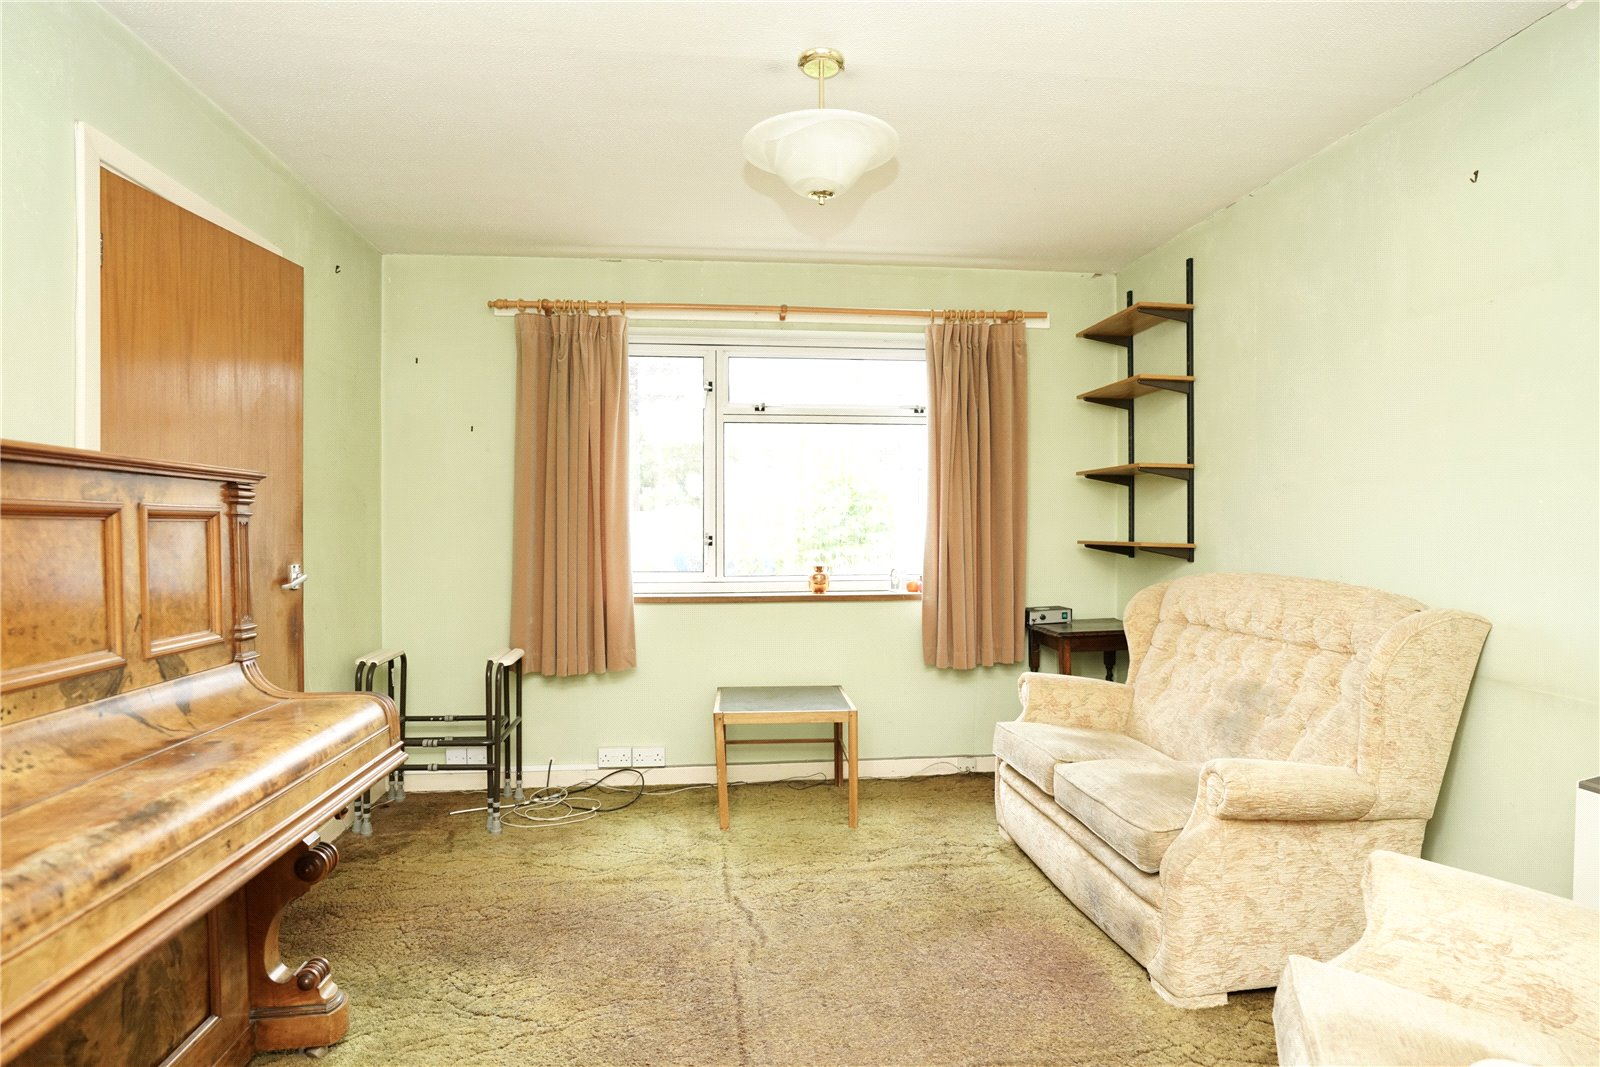 3 bed house for sale in Kenilworth Close, Eaton Socon  - Property Image 4